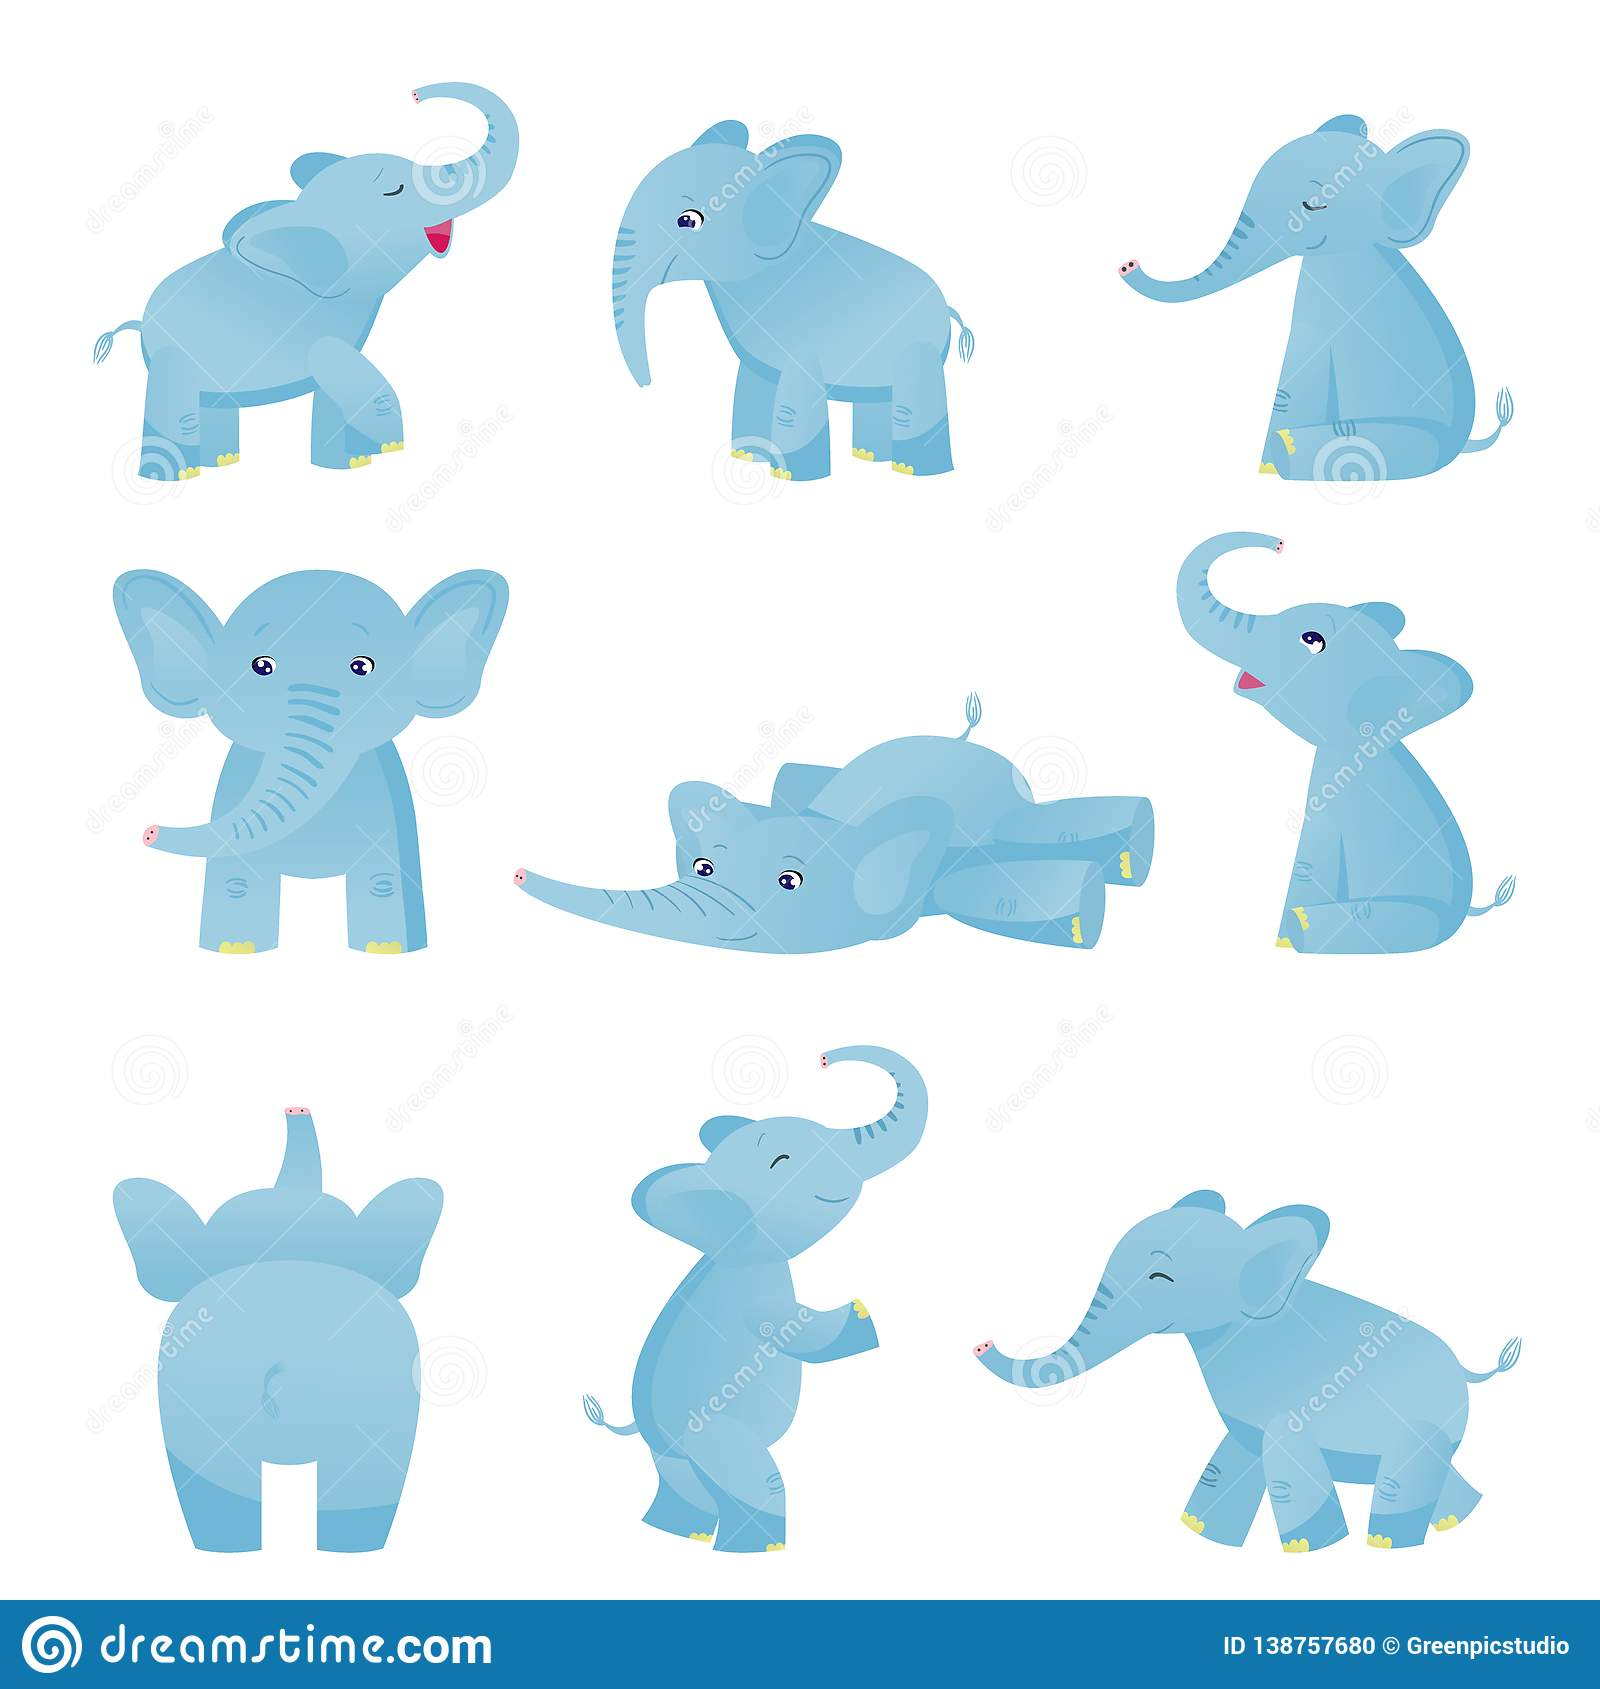 Collection of Cute Baby Elephant in Different Poses, Light Blue Lovely Animal Character Vector Illustration